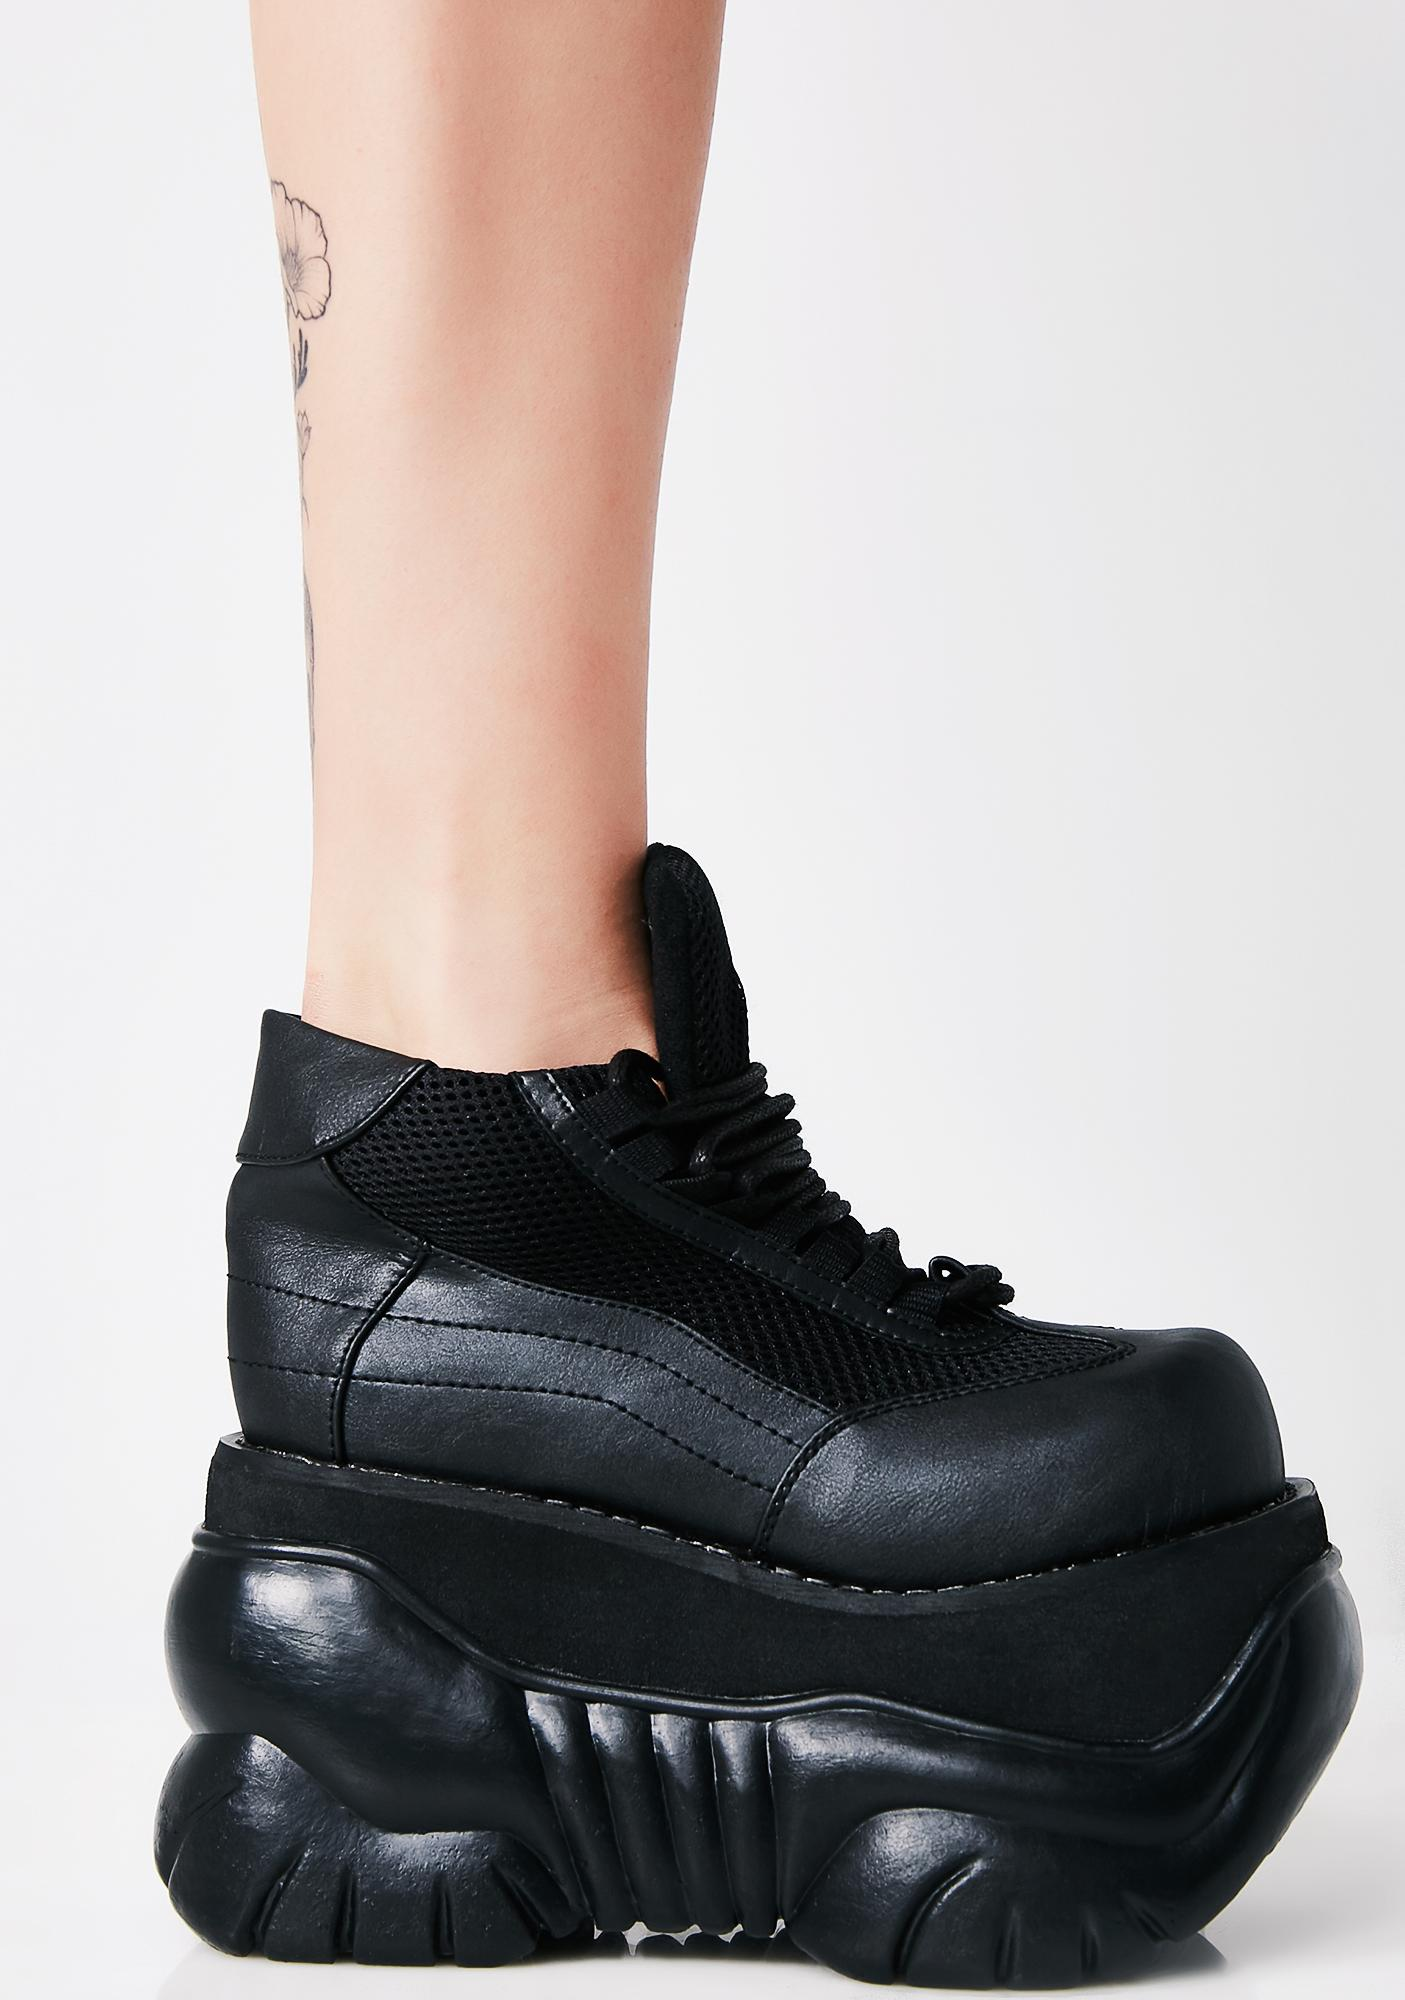 Cyber Platform Sneakers free shipping reliable Vzr7Tol